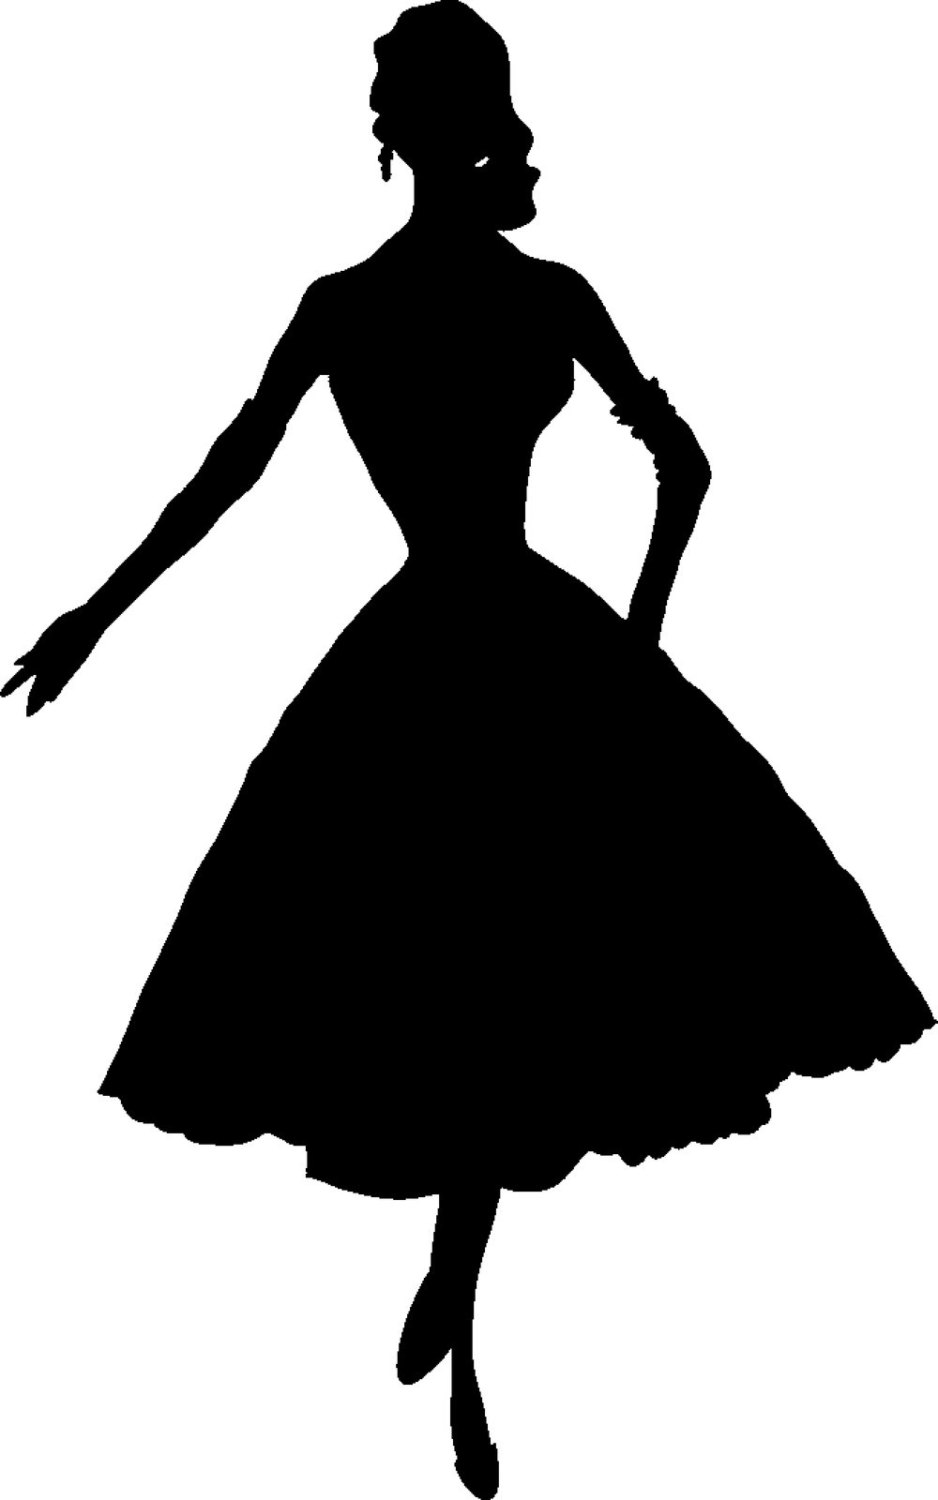 Silhouette Woman in Dress Rubber Stamp.